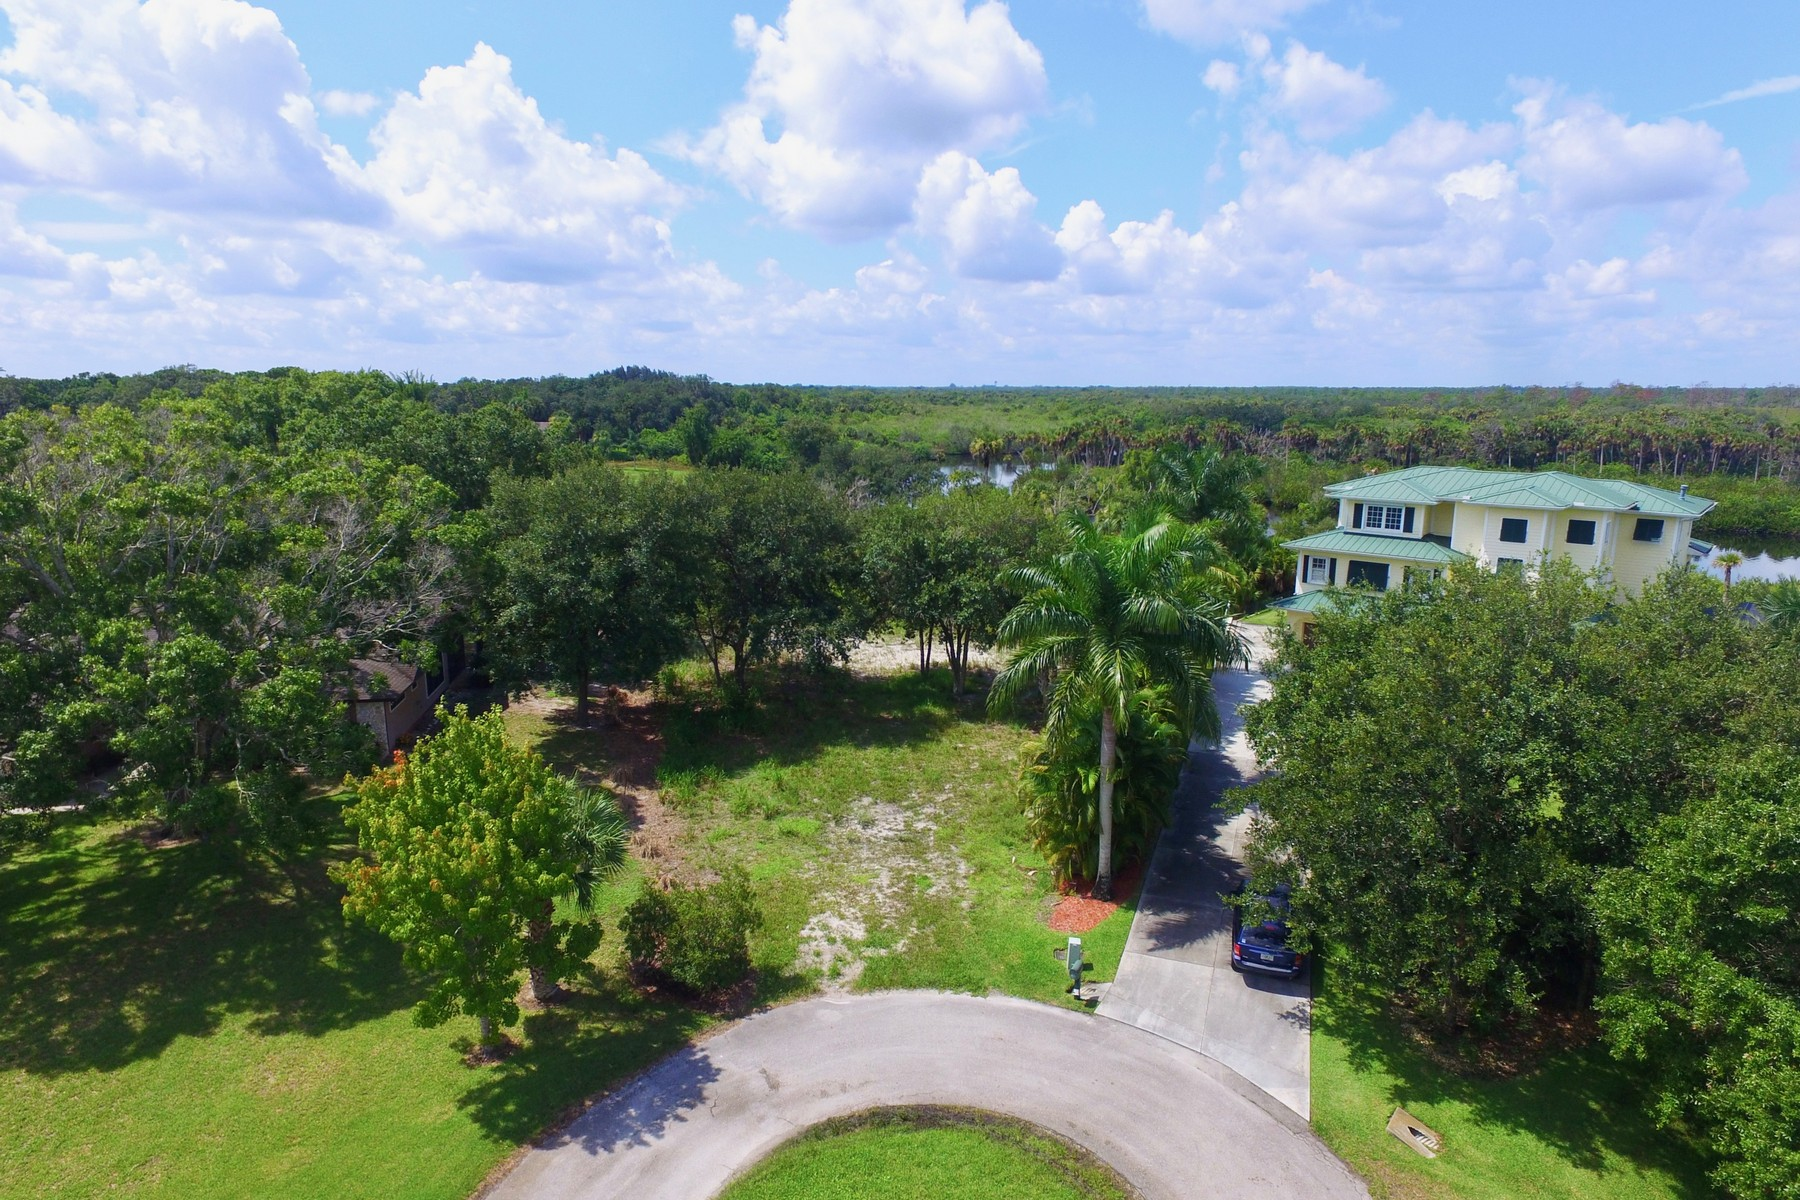 Land for Sale at Serene Location Overlooking the St. Sebastian River Preserve 845 Robin Lane Sebastian, Florida 32958 United States